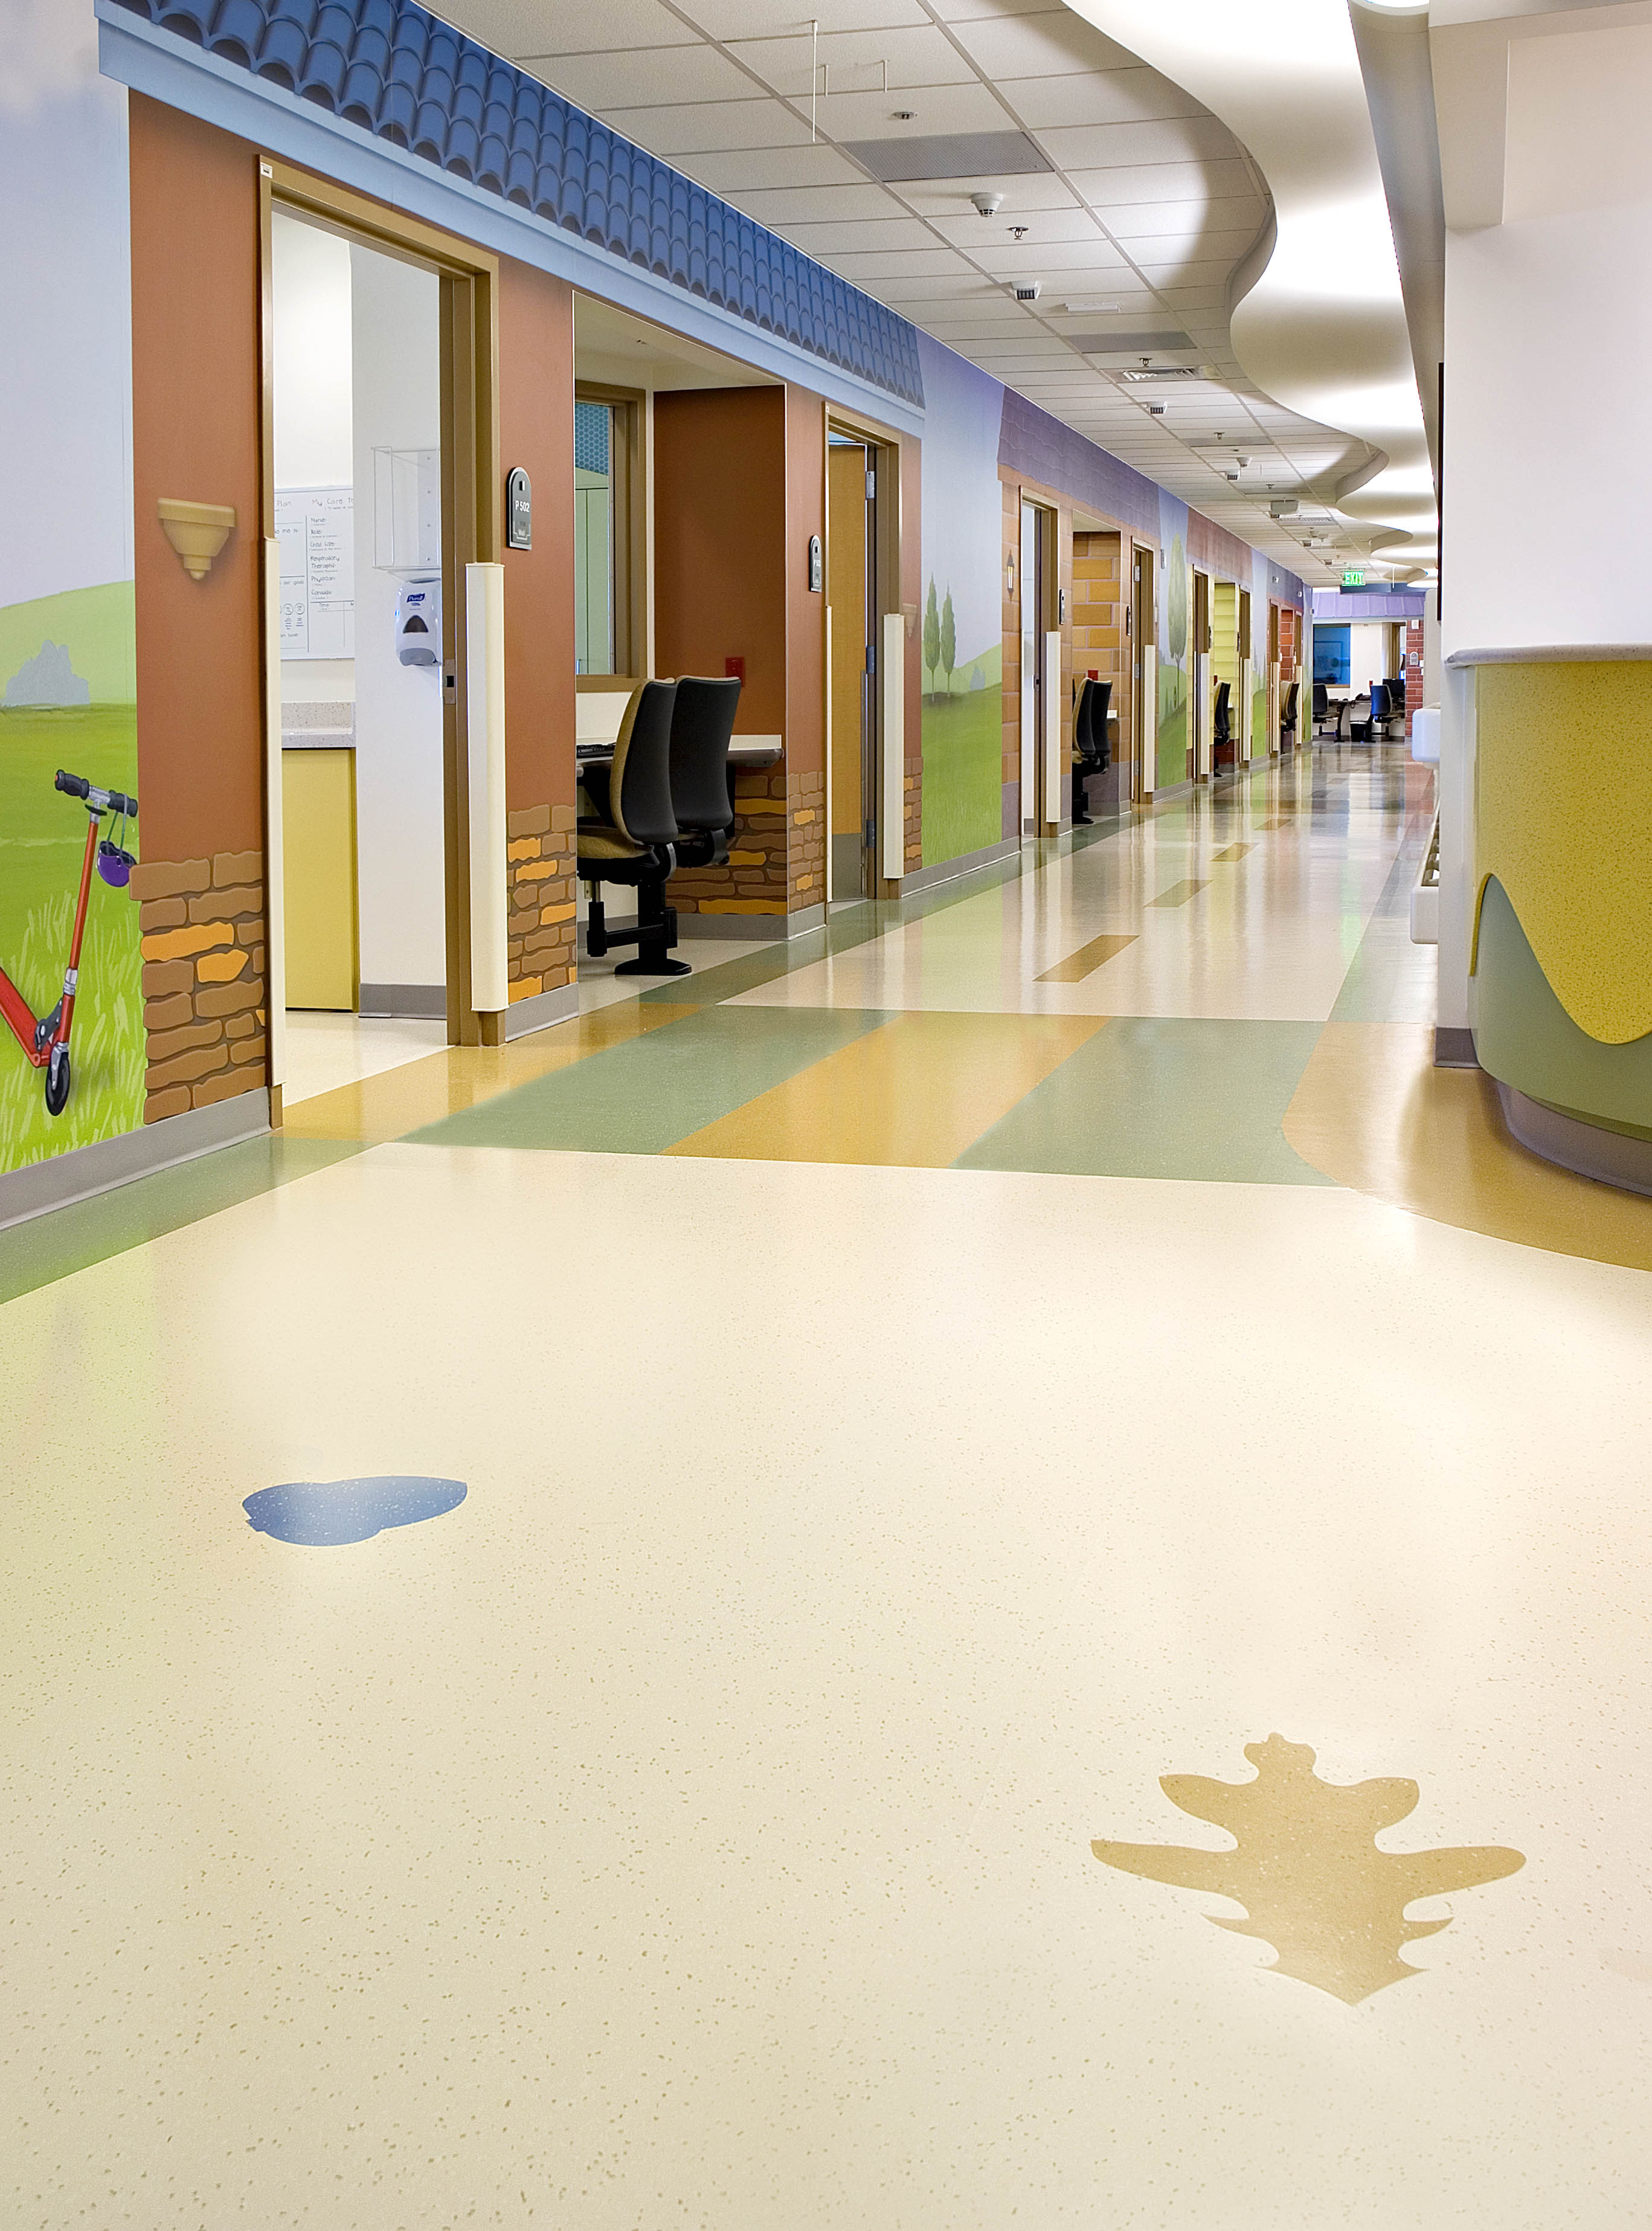 ... They Are Not Always Implemented With Occupant Comfort In Mind. Take  Acoustics For Exampleu2014many Facilities Choose Flooring Options That Are ...